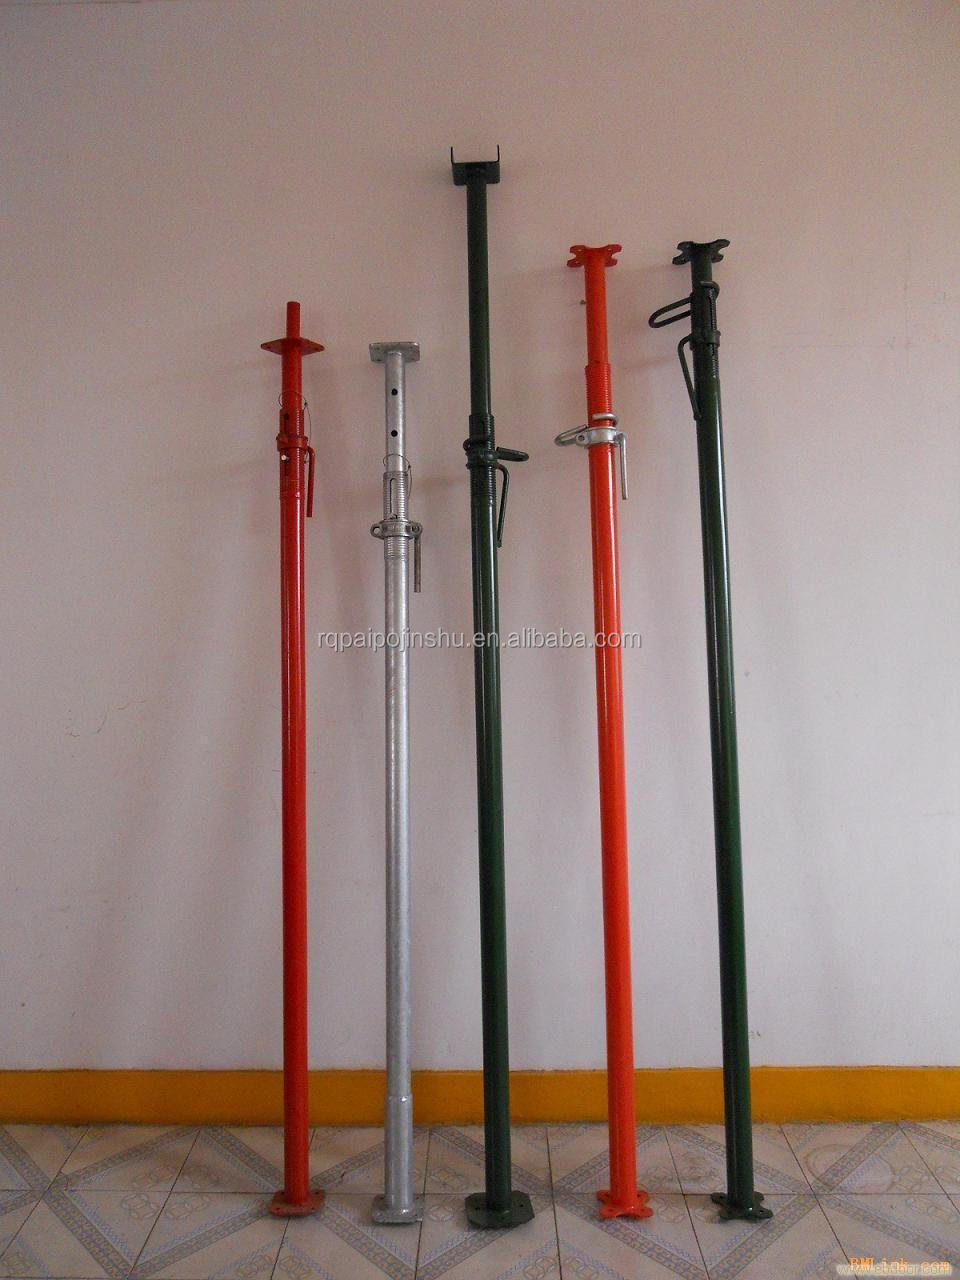 Expandable Walk Boards : Scaffolding shoring post props jack and pull push